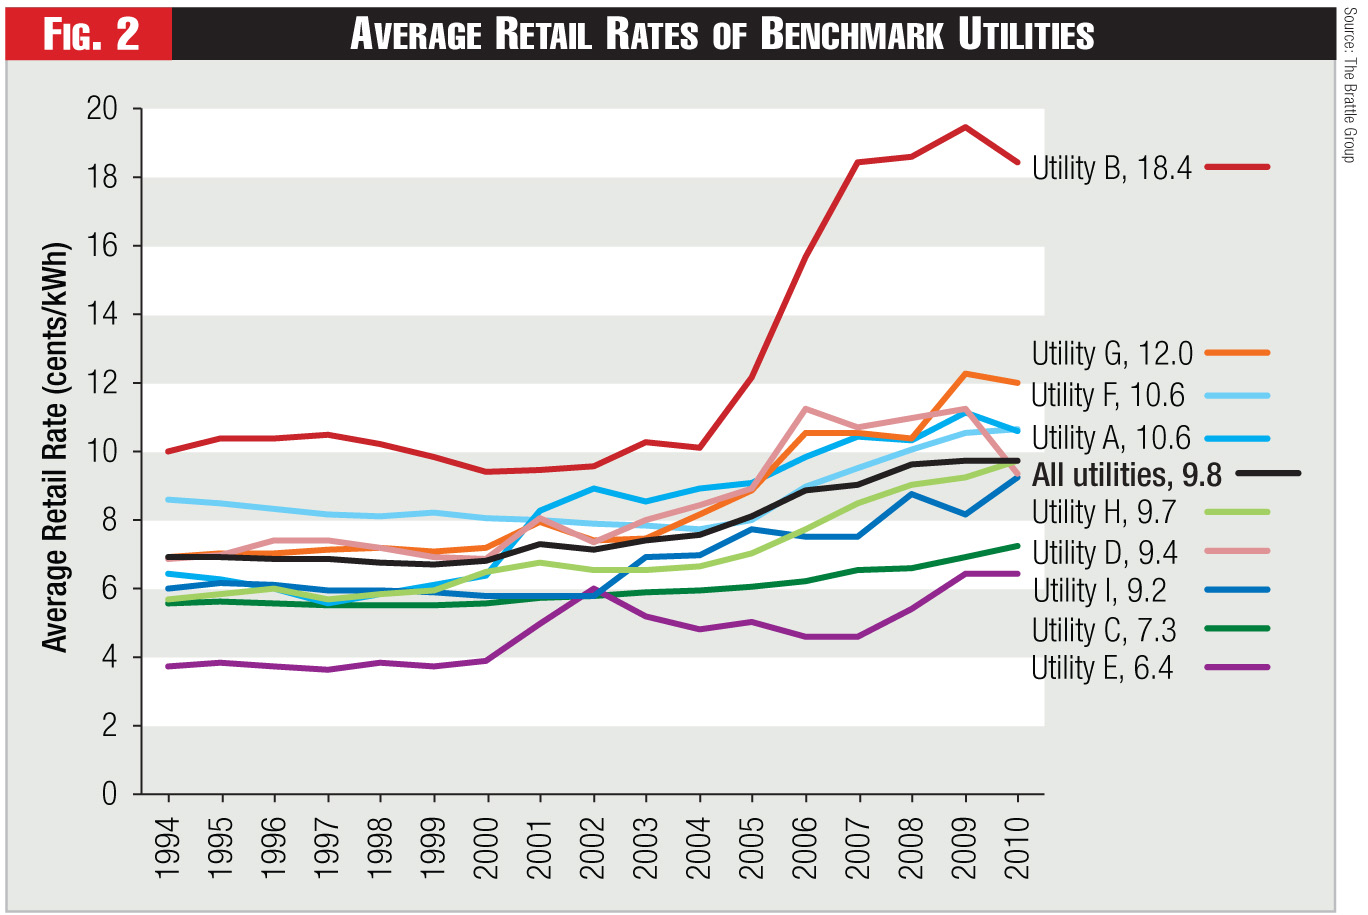 Figure 2 - Average Retail Rates of Benchmark Utilities